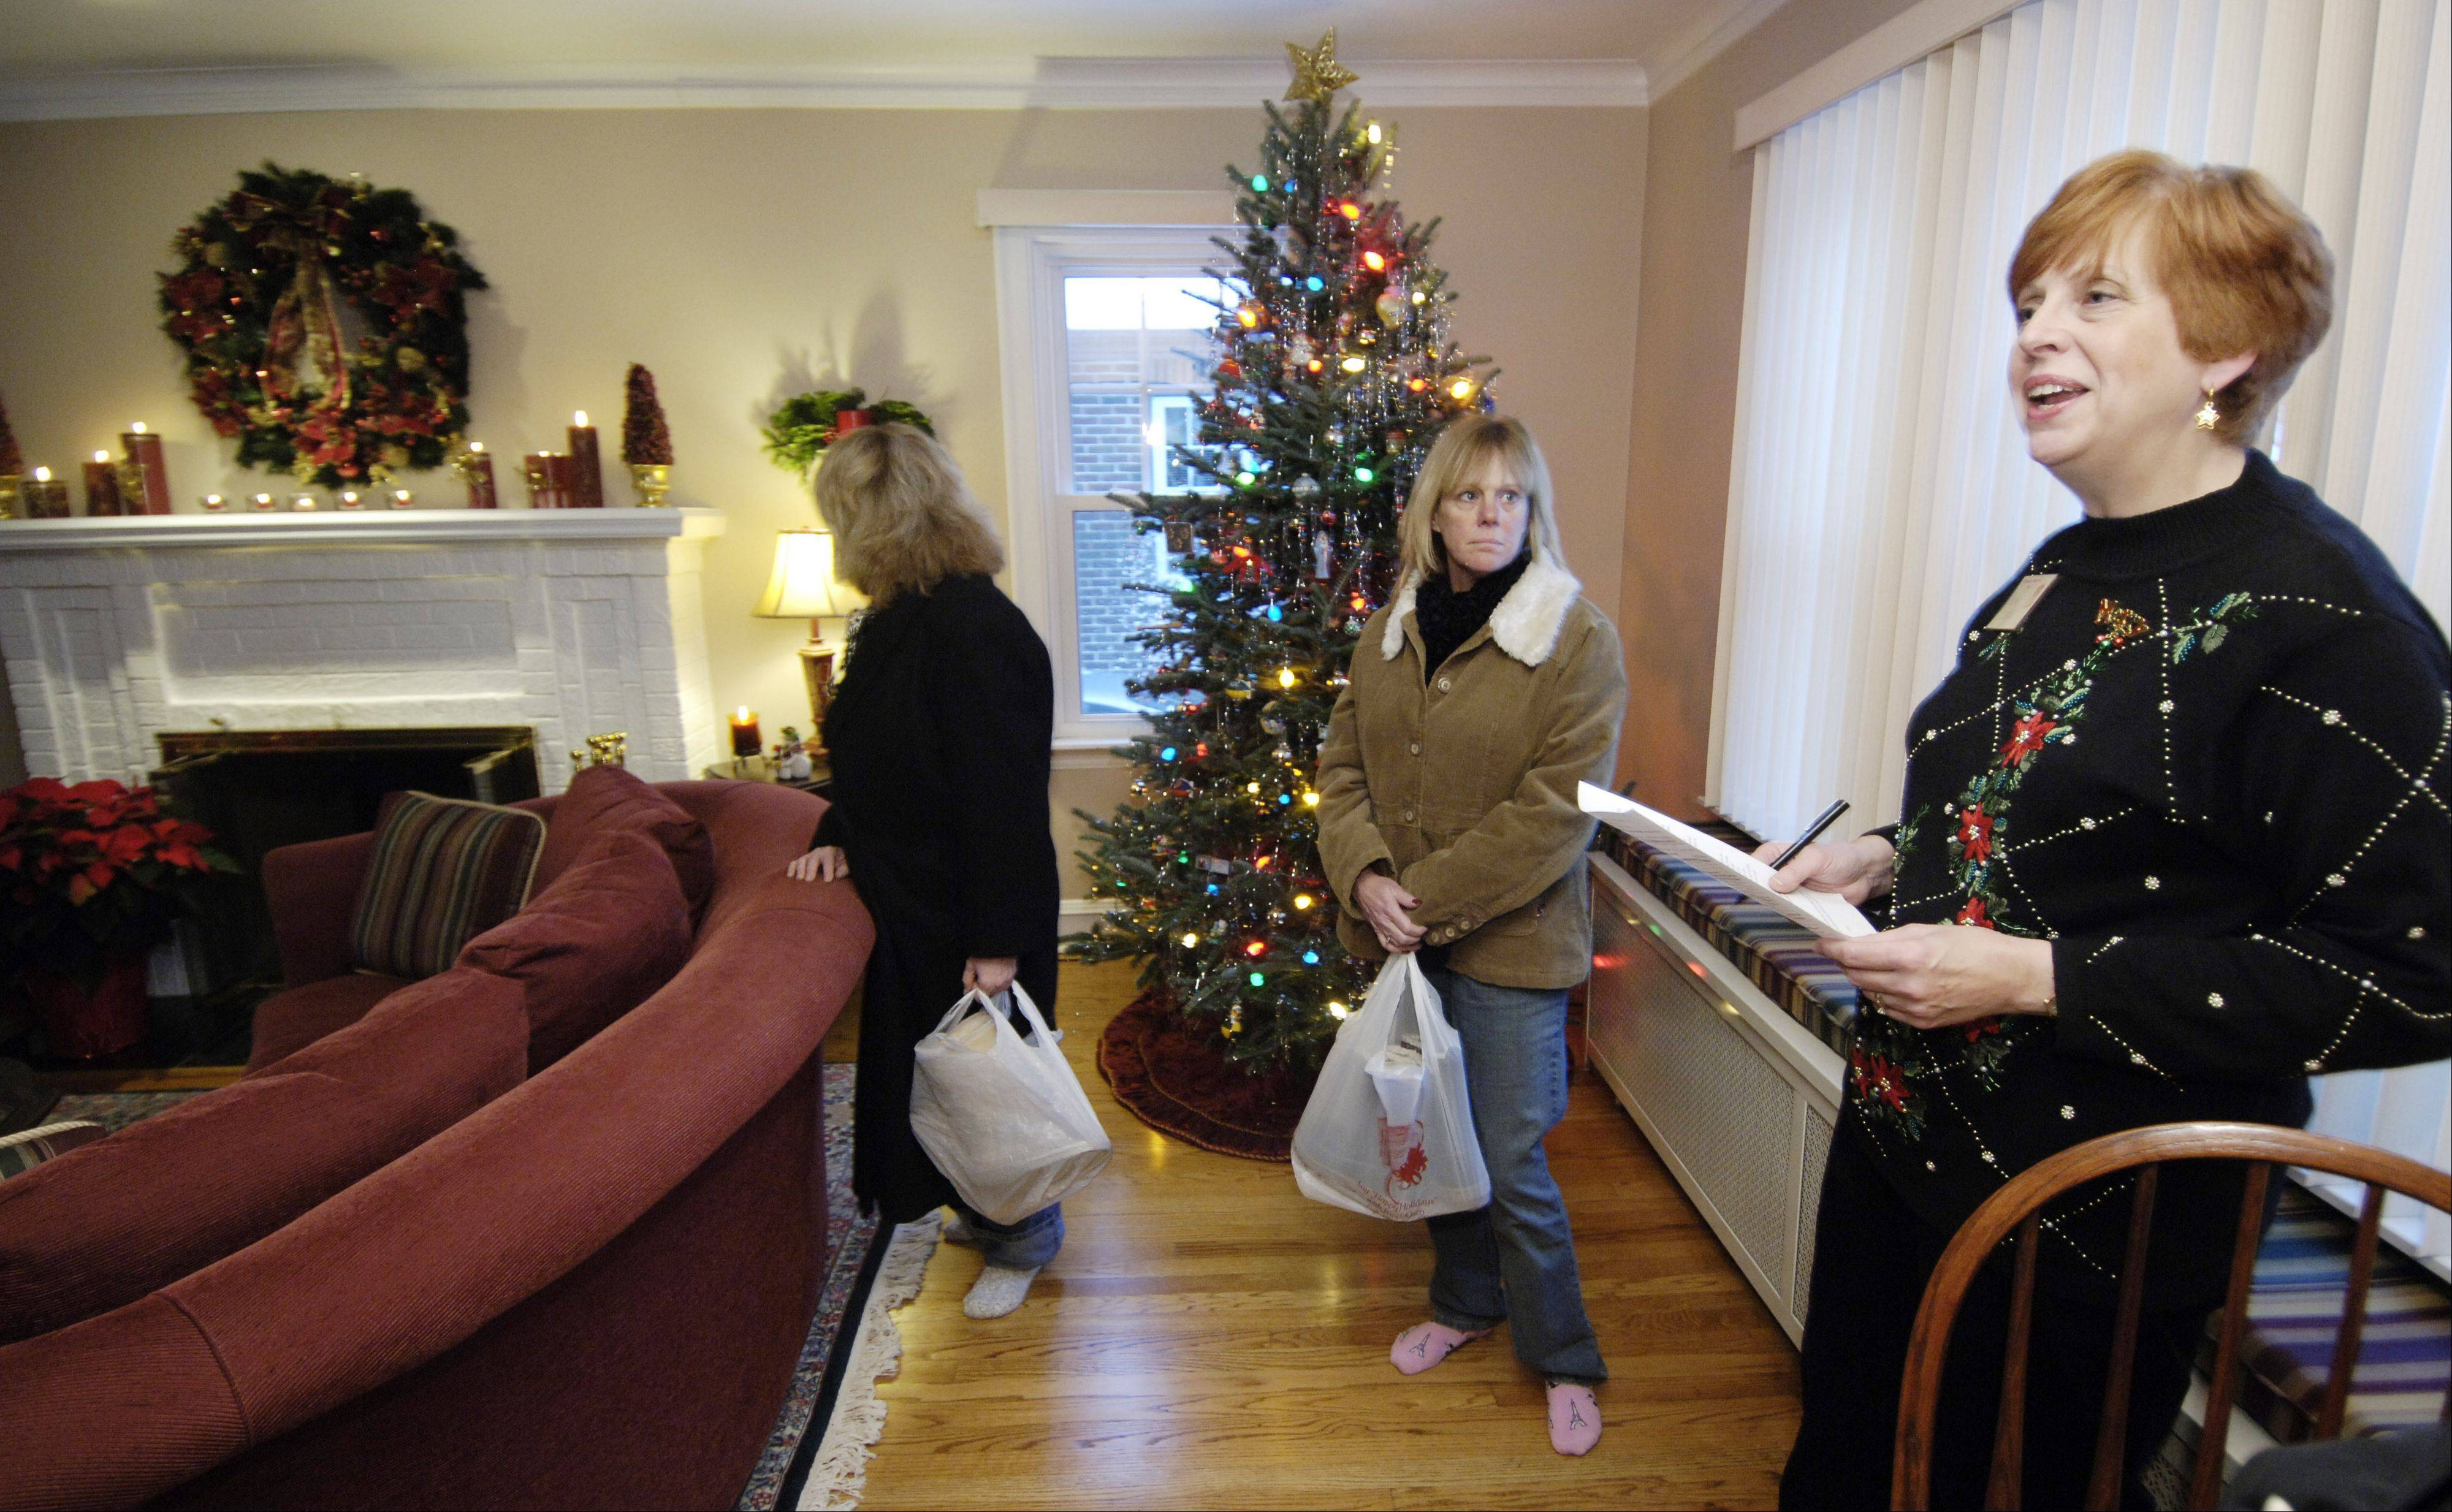 Arlene Juracek, now the mayor of Mount Prospect, greets visitors to one of the home in the historical society's 2006 holiday housewalk. The event is the group's biggest fundraiser of the year